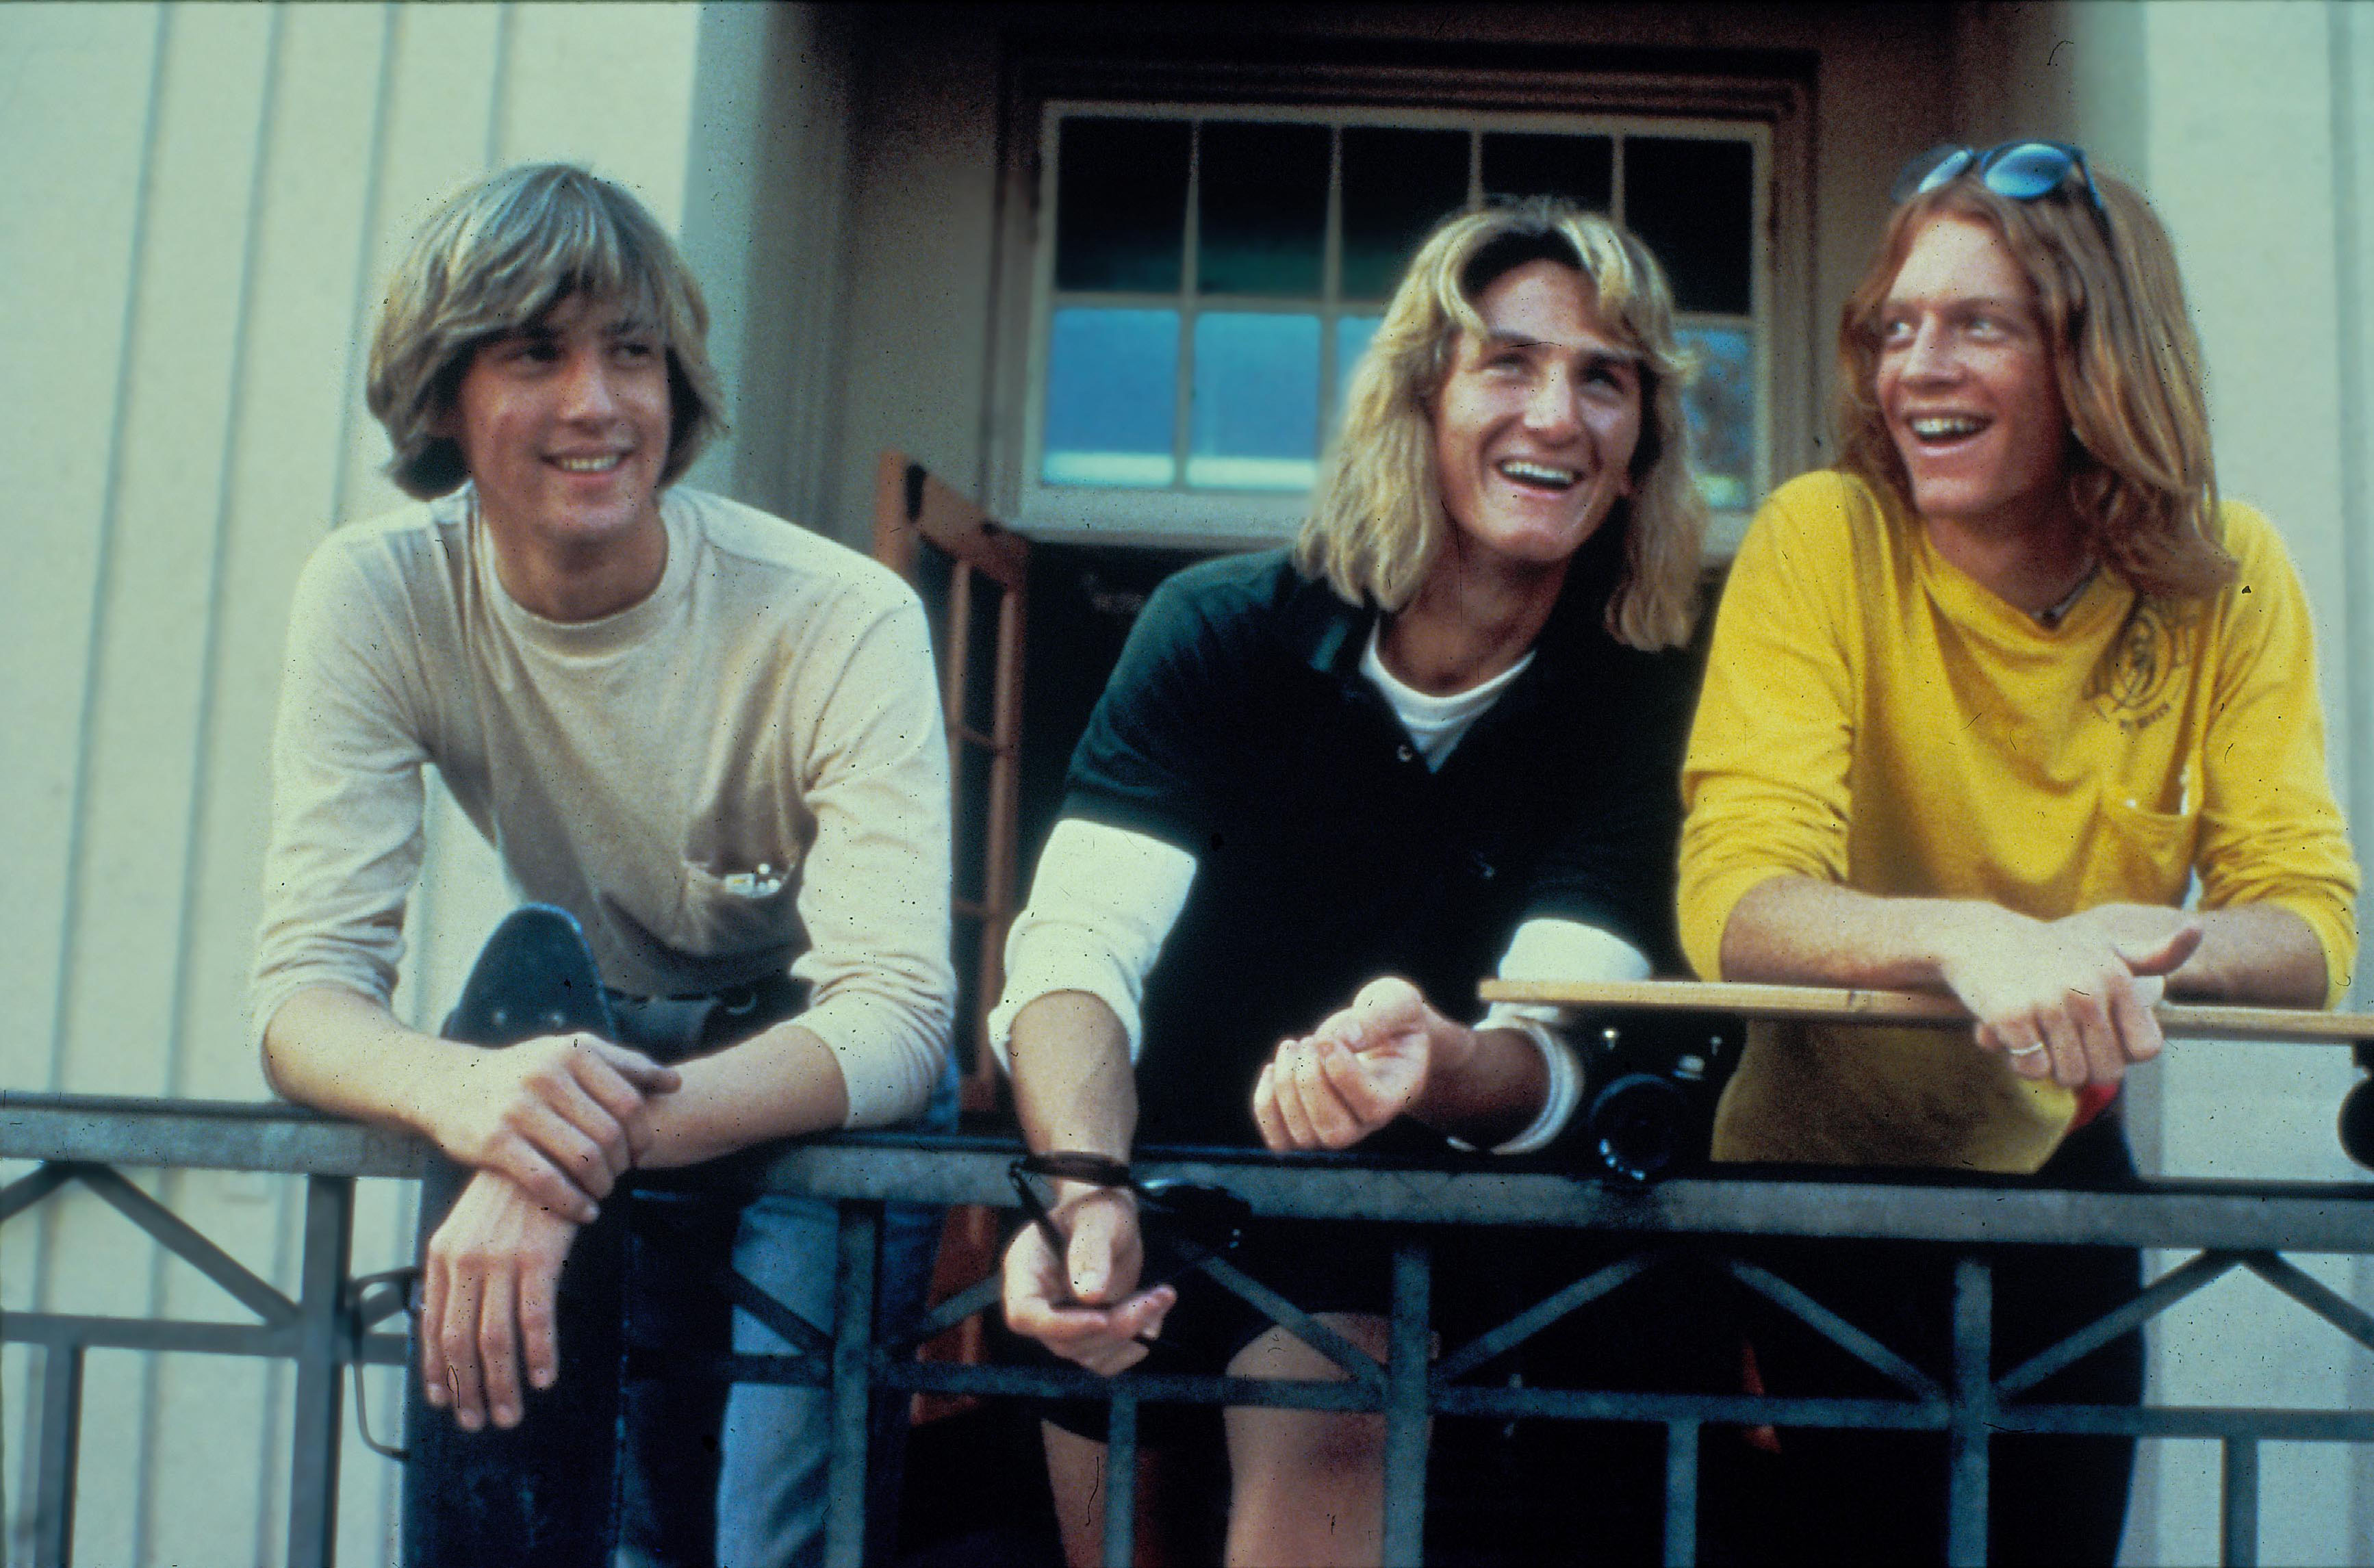 FAST TIMES AT RIDGEMONT HIGH (1982) ANTHONY EDWARDS, SEAN PENN, ERIC STOLTZ